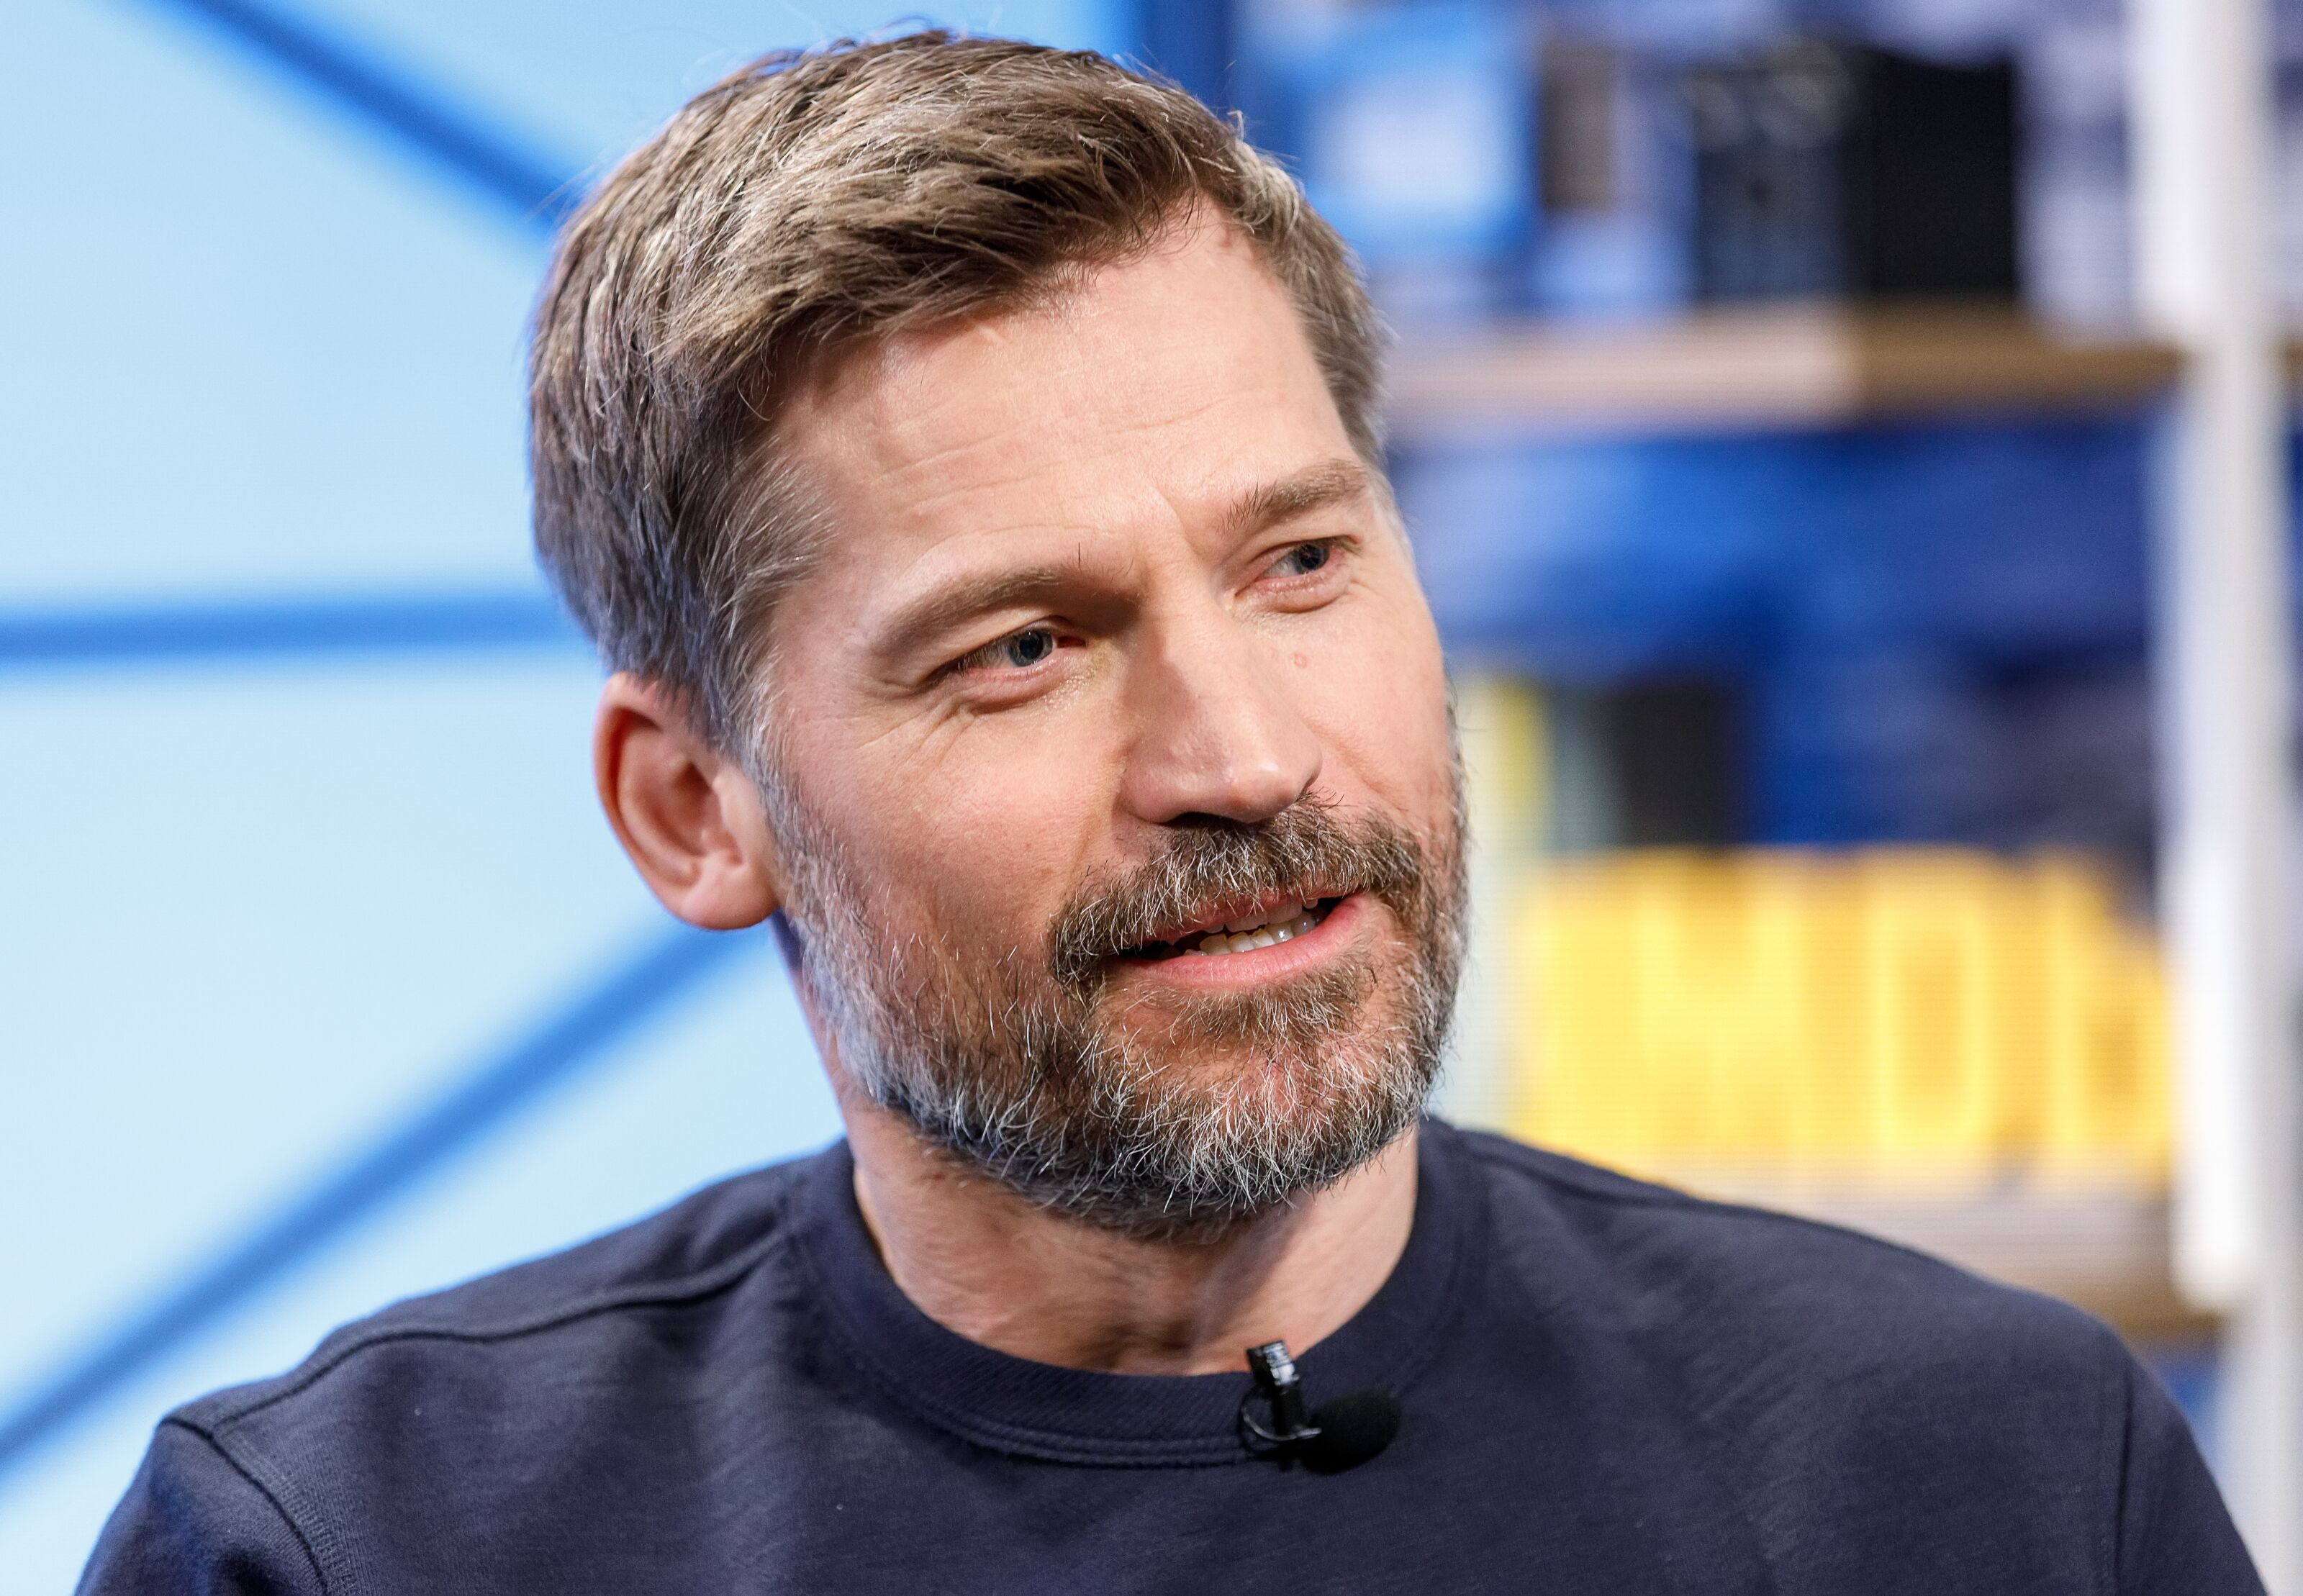 Nikolaj Coster-Waldau (Jaime) is the face of an internet scam, and other news